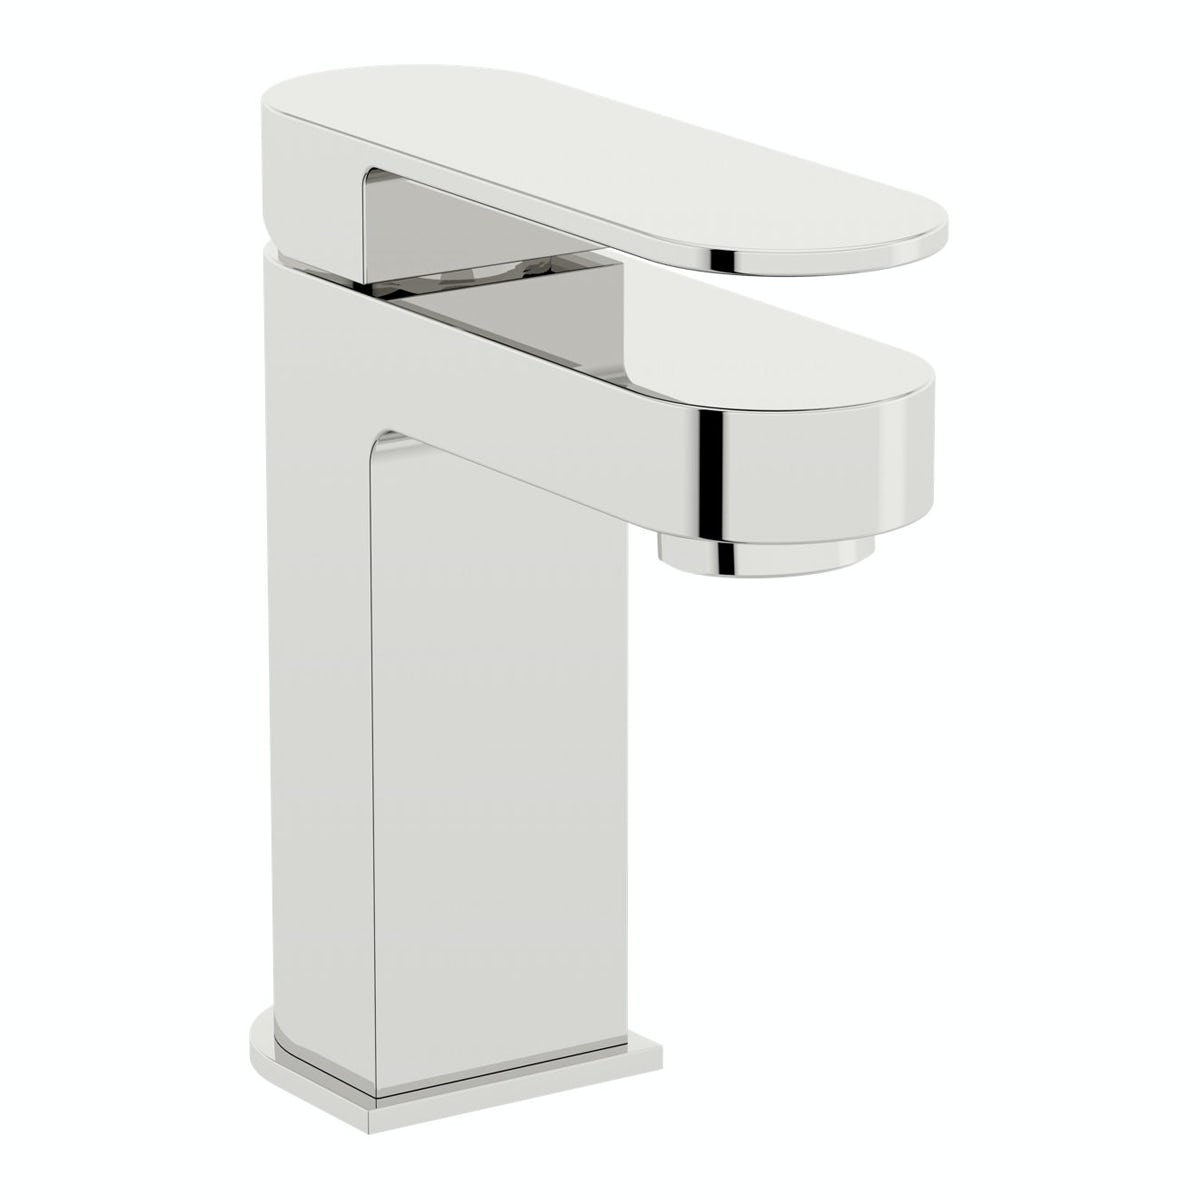 Mode Stanford cloakroom basin mixer tap